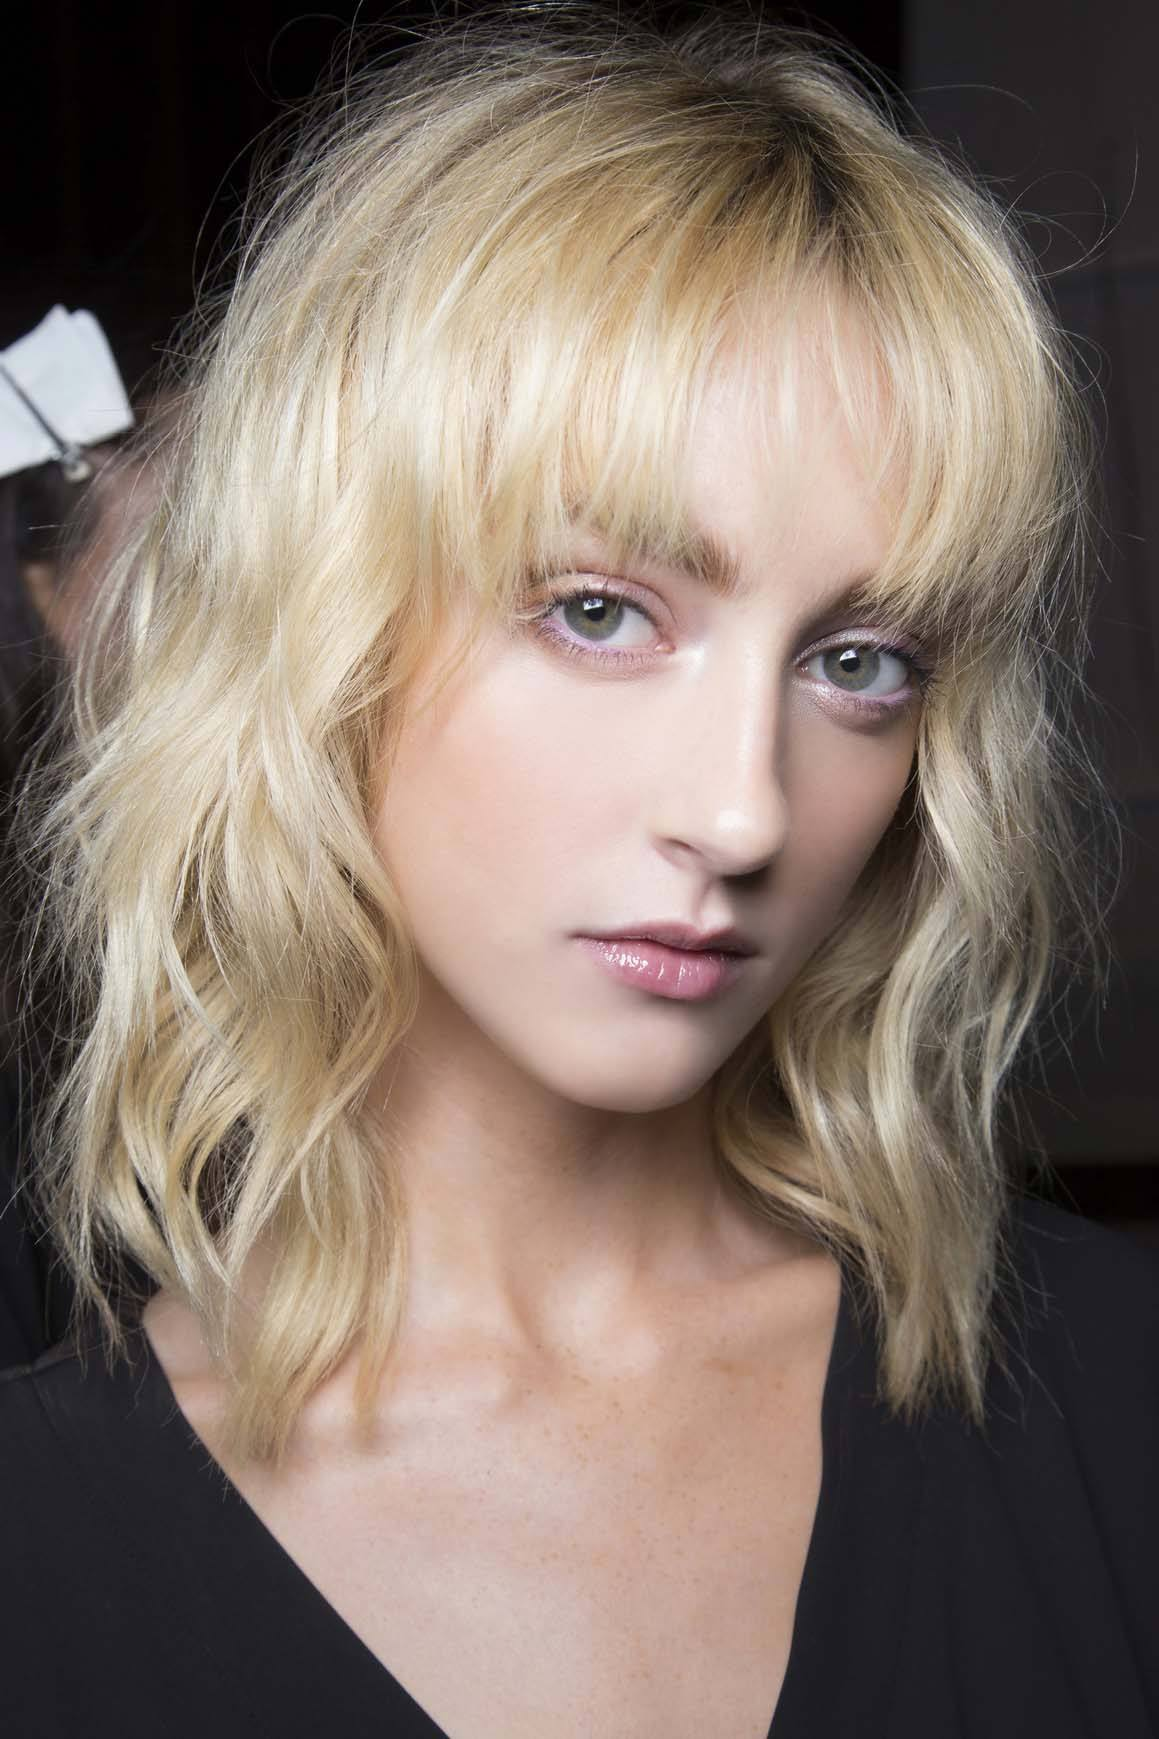 Latest hairstyles for women: All Things Hair - IMAGE - blonde wavy shaggy hair